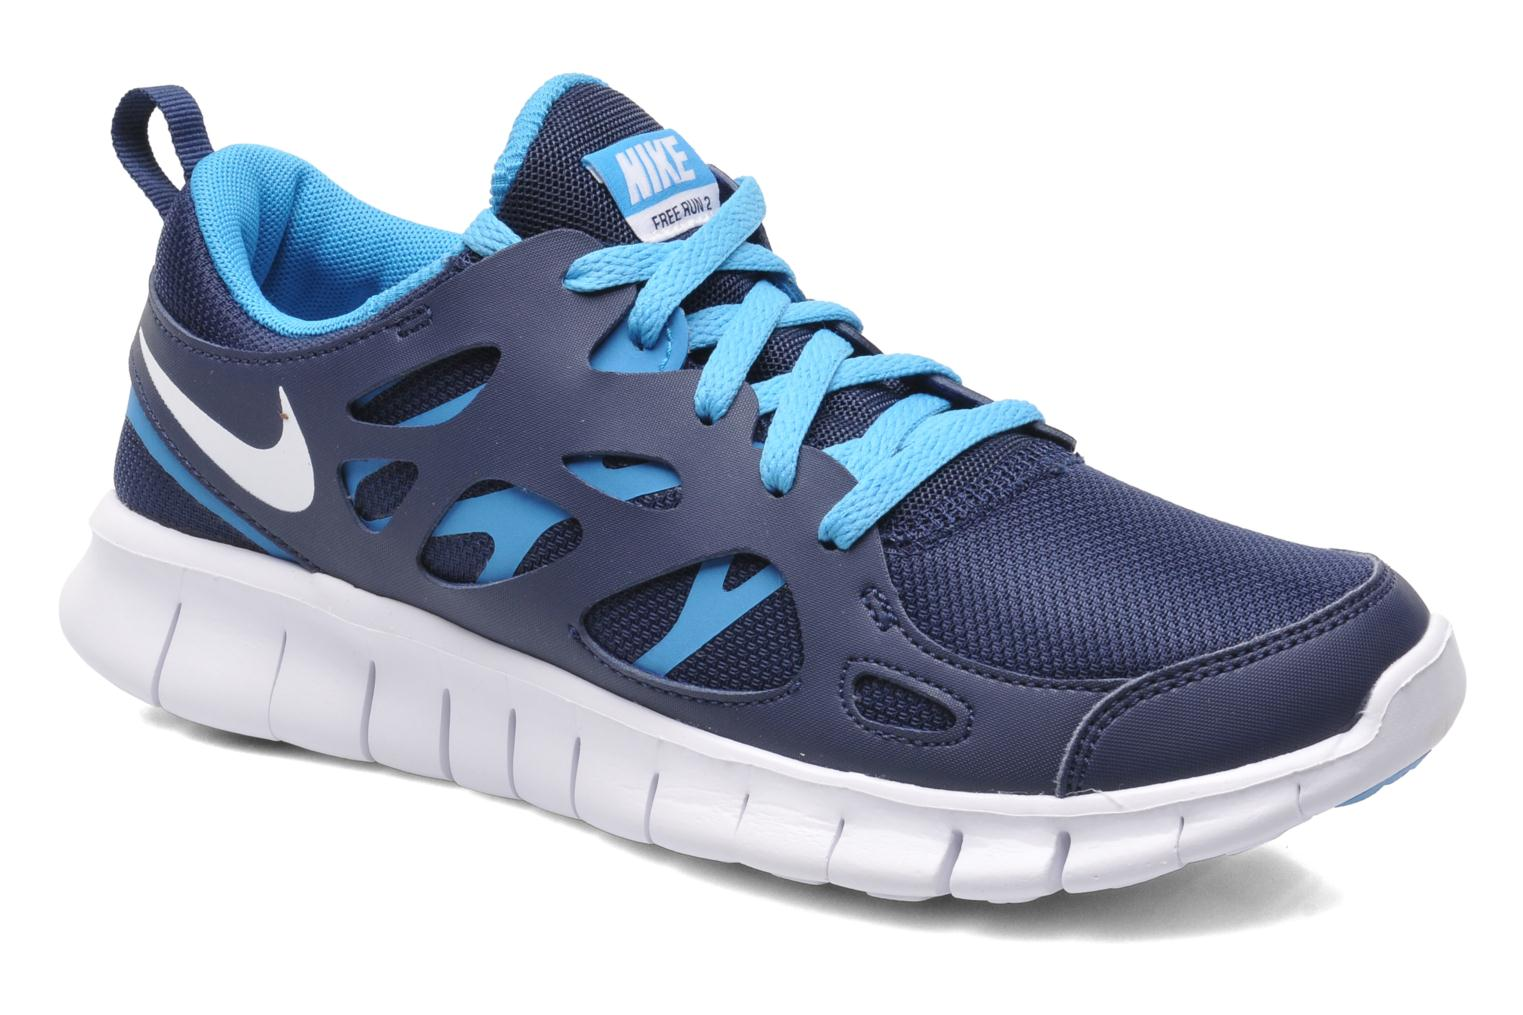 NIKE FREE RUN 2 (GS) by Nike Azul